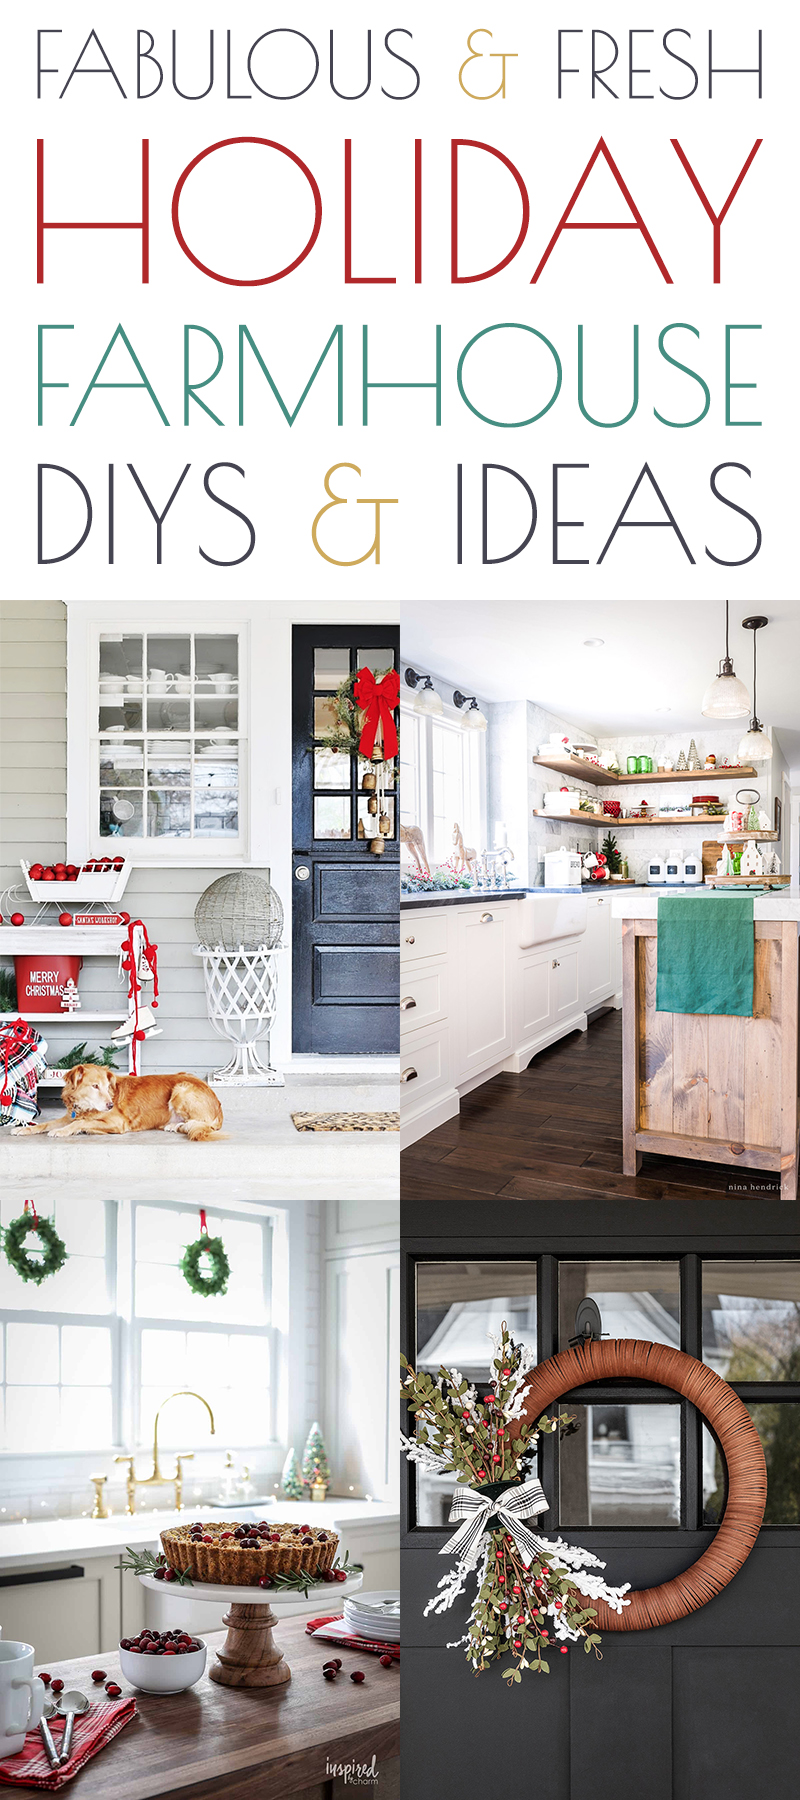 Fabulous and Fresh Holiday Farmhouse DIYS and Ideas are waiting to inspire you to create. All the newest happenings in the Farmhouse World all in one place.